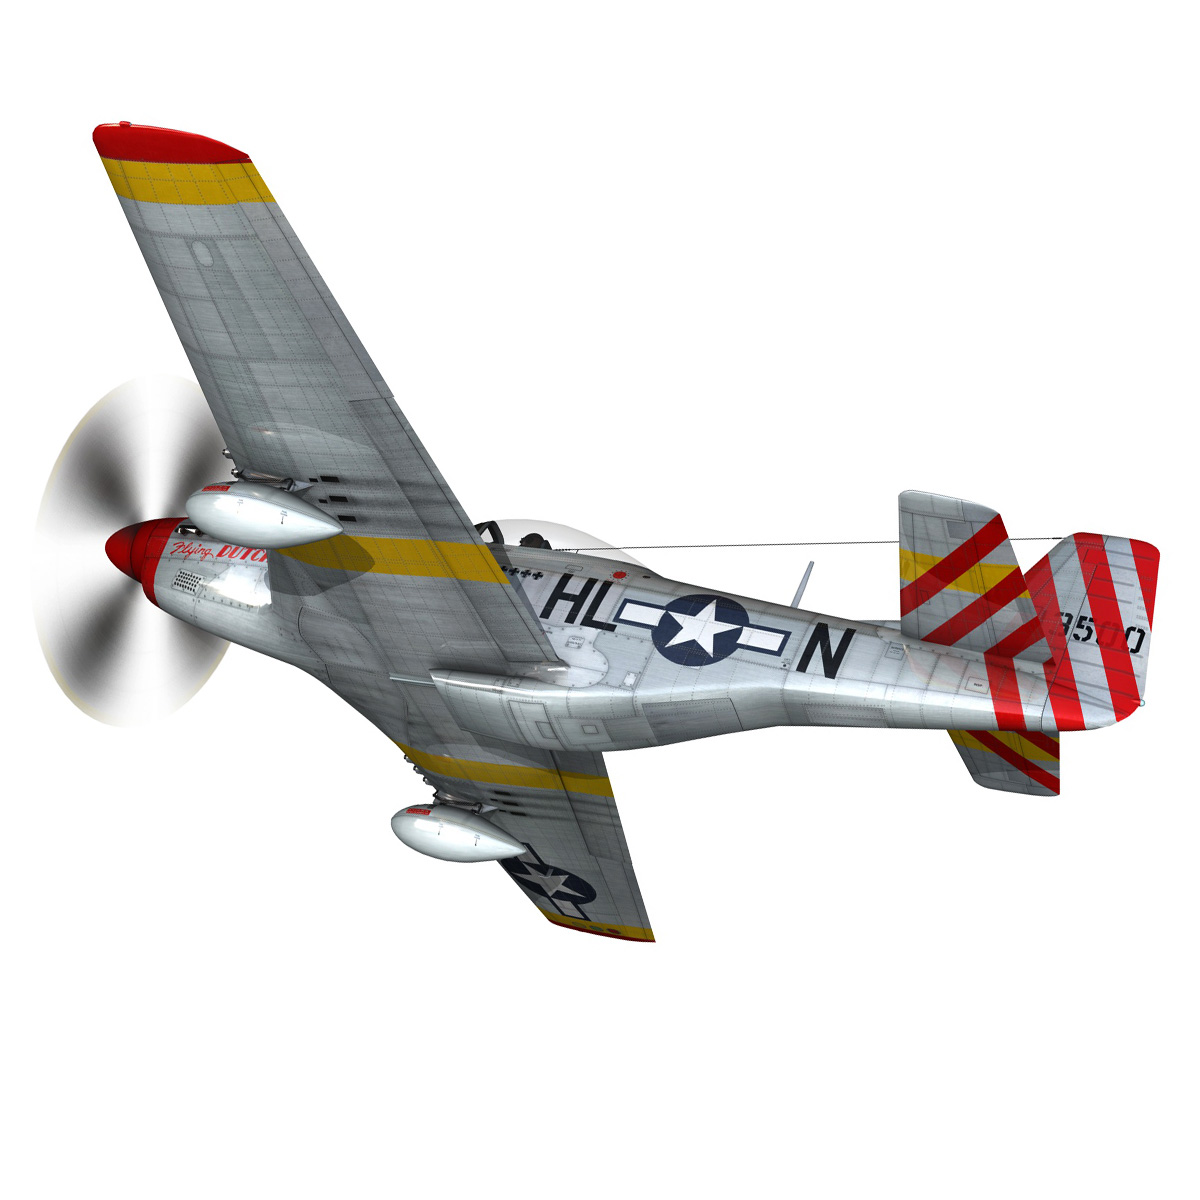 north american p-51d – flying dutchman 3d model fbx lwo lw lws obj c4d 267120